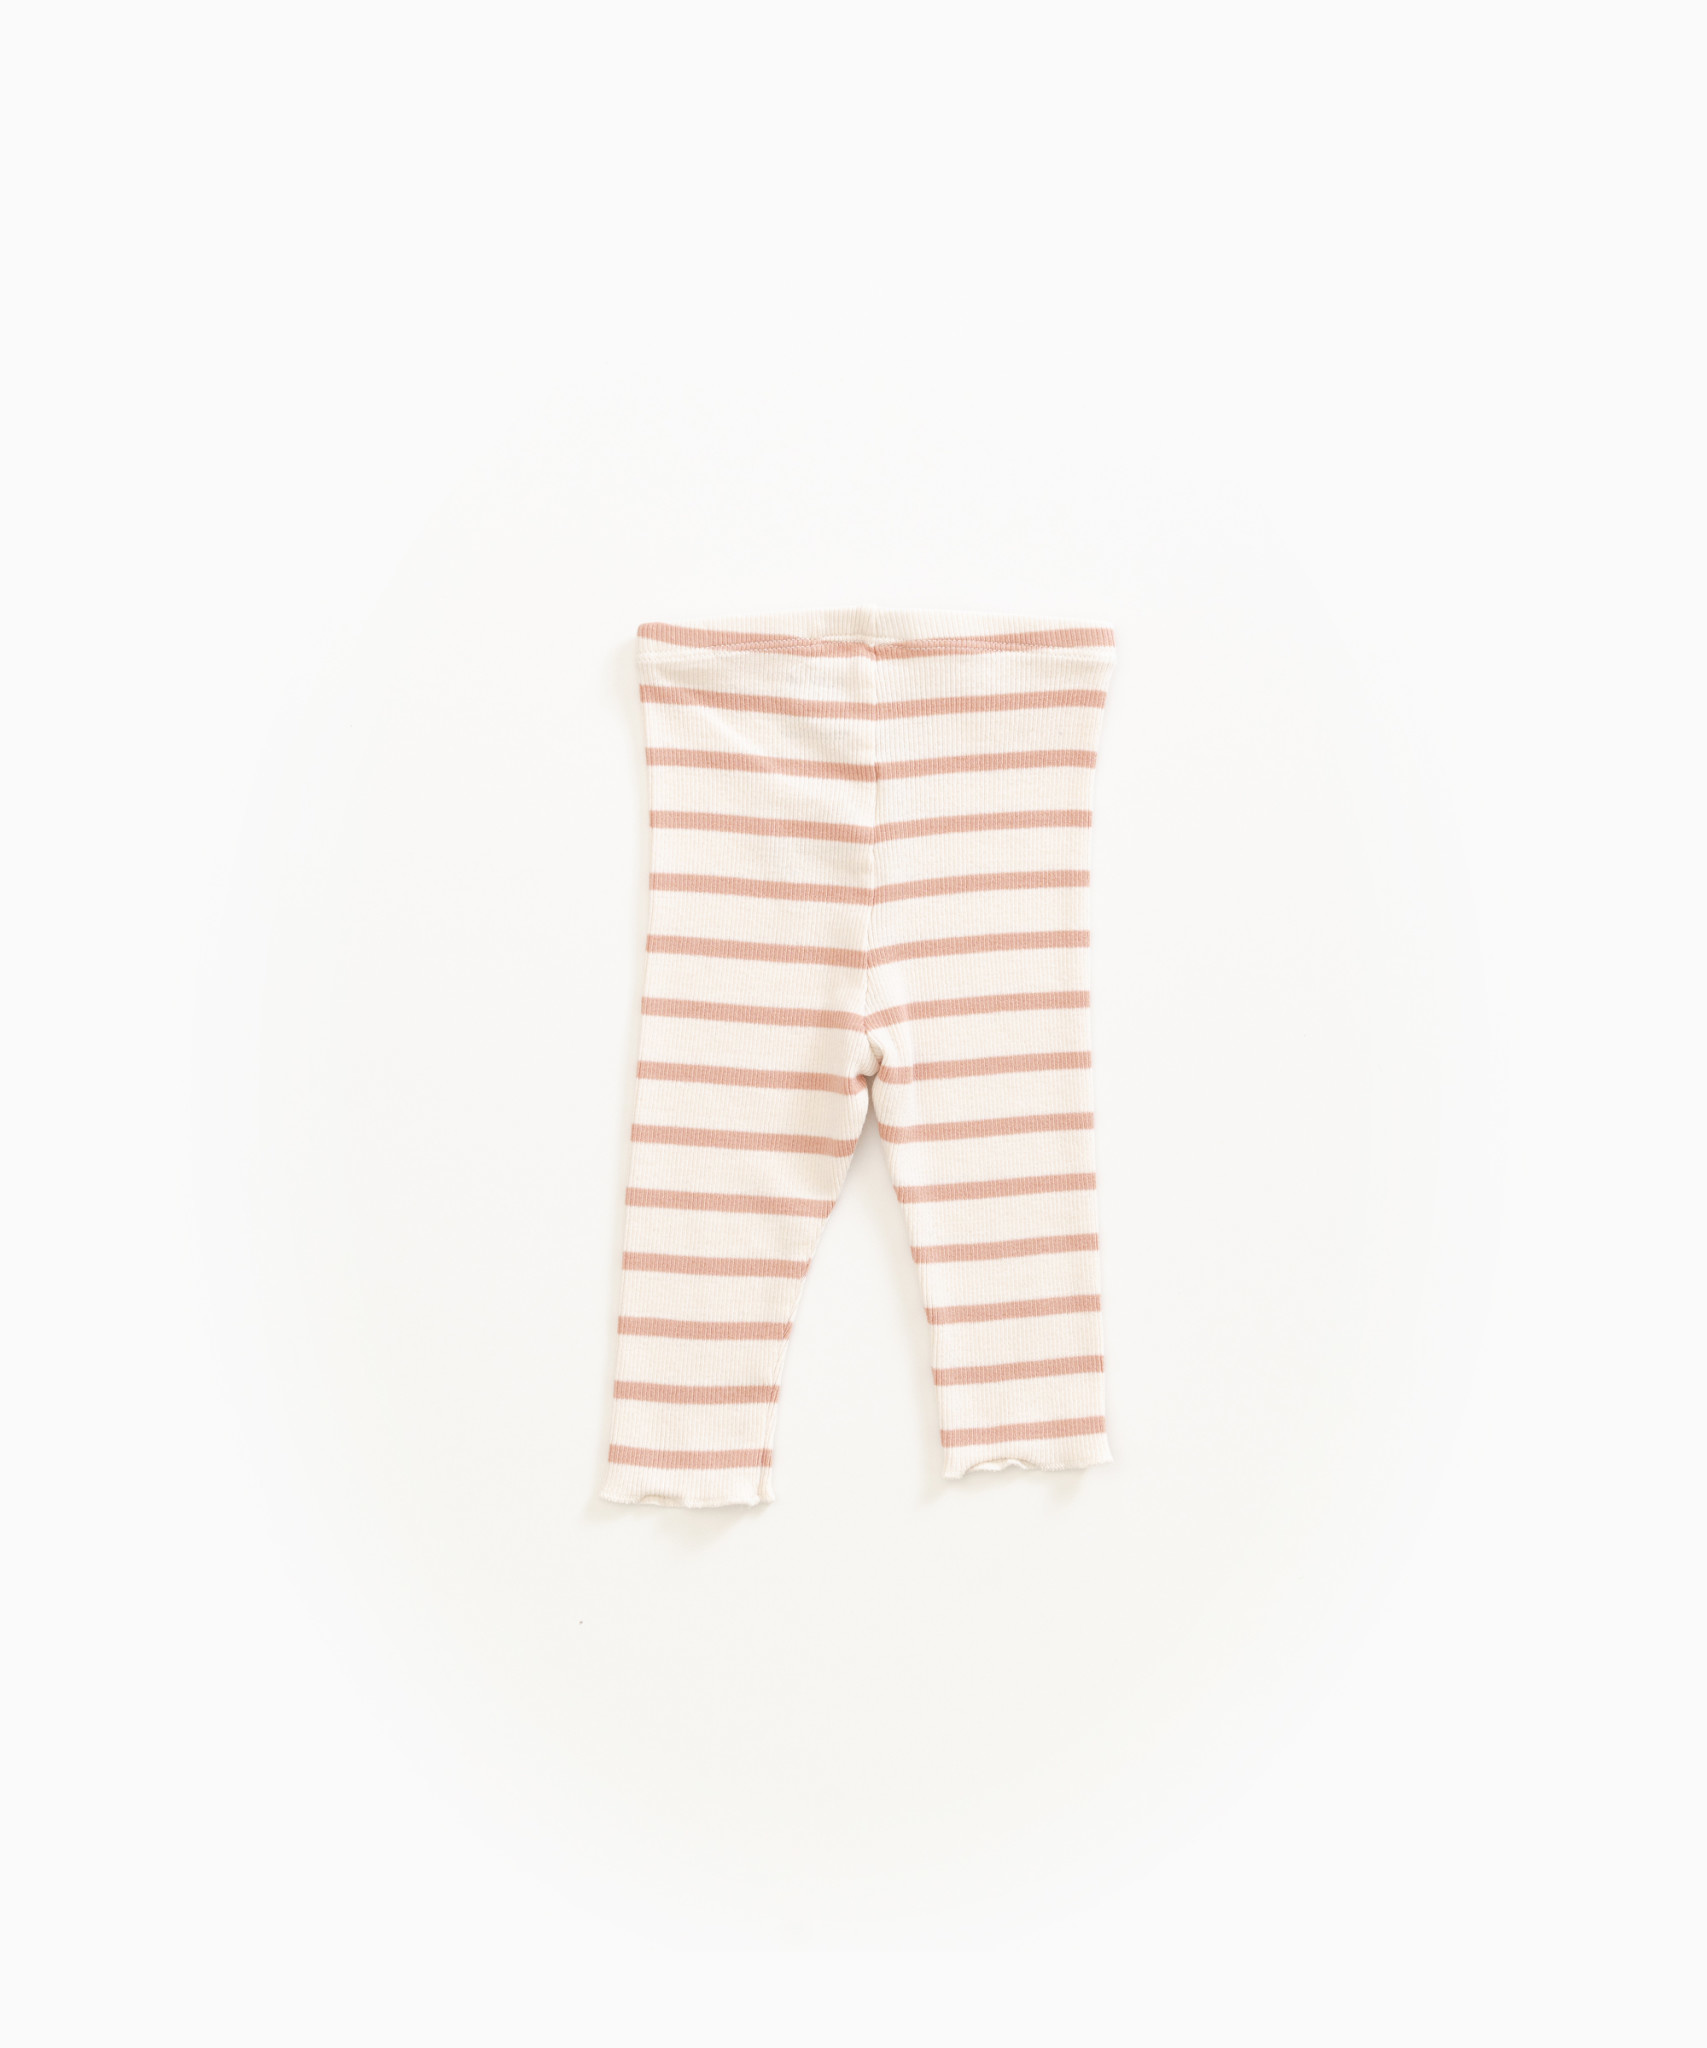 Play-up Striped leggings in organic cotton |Smooth